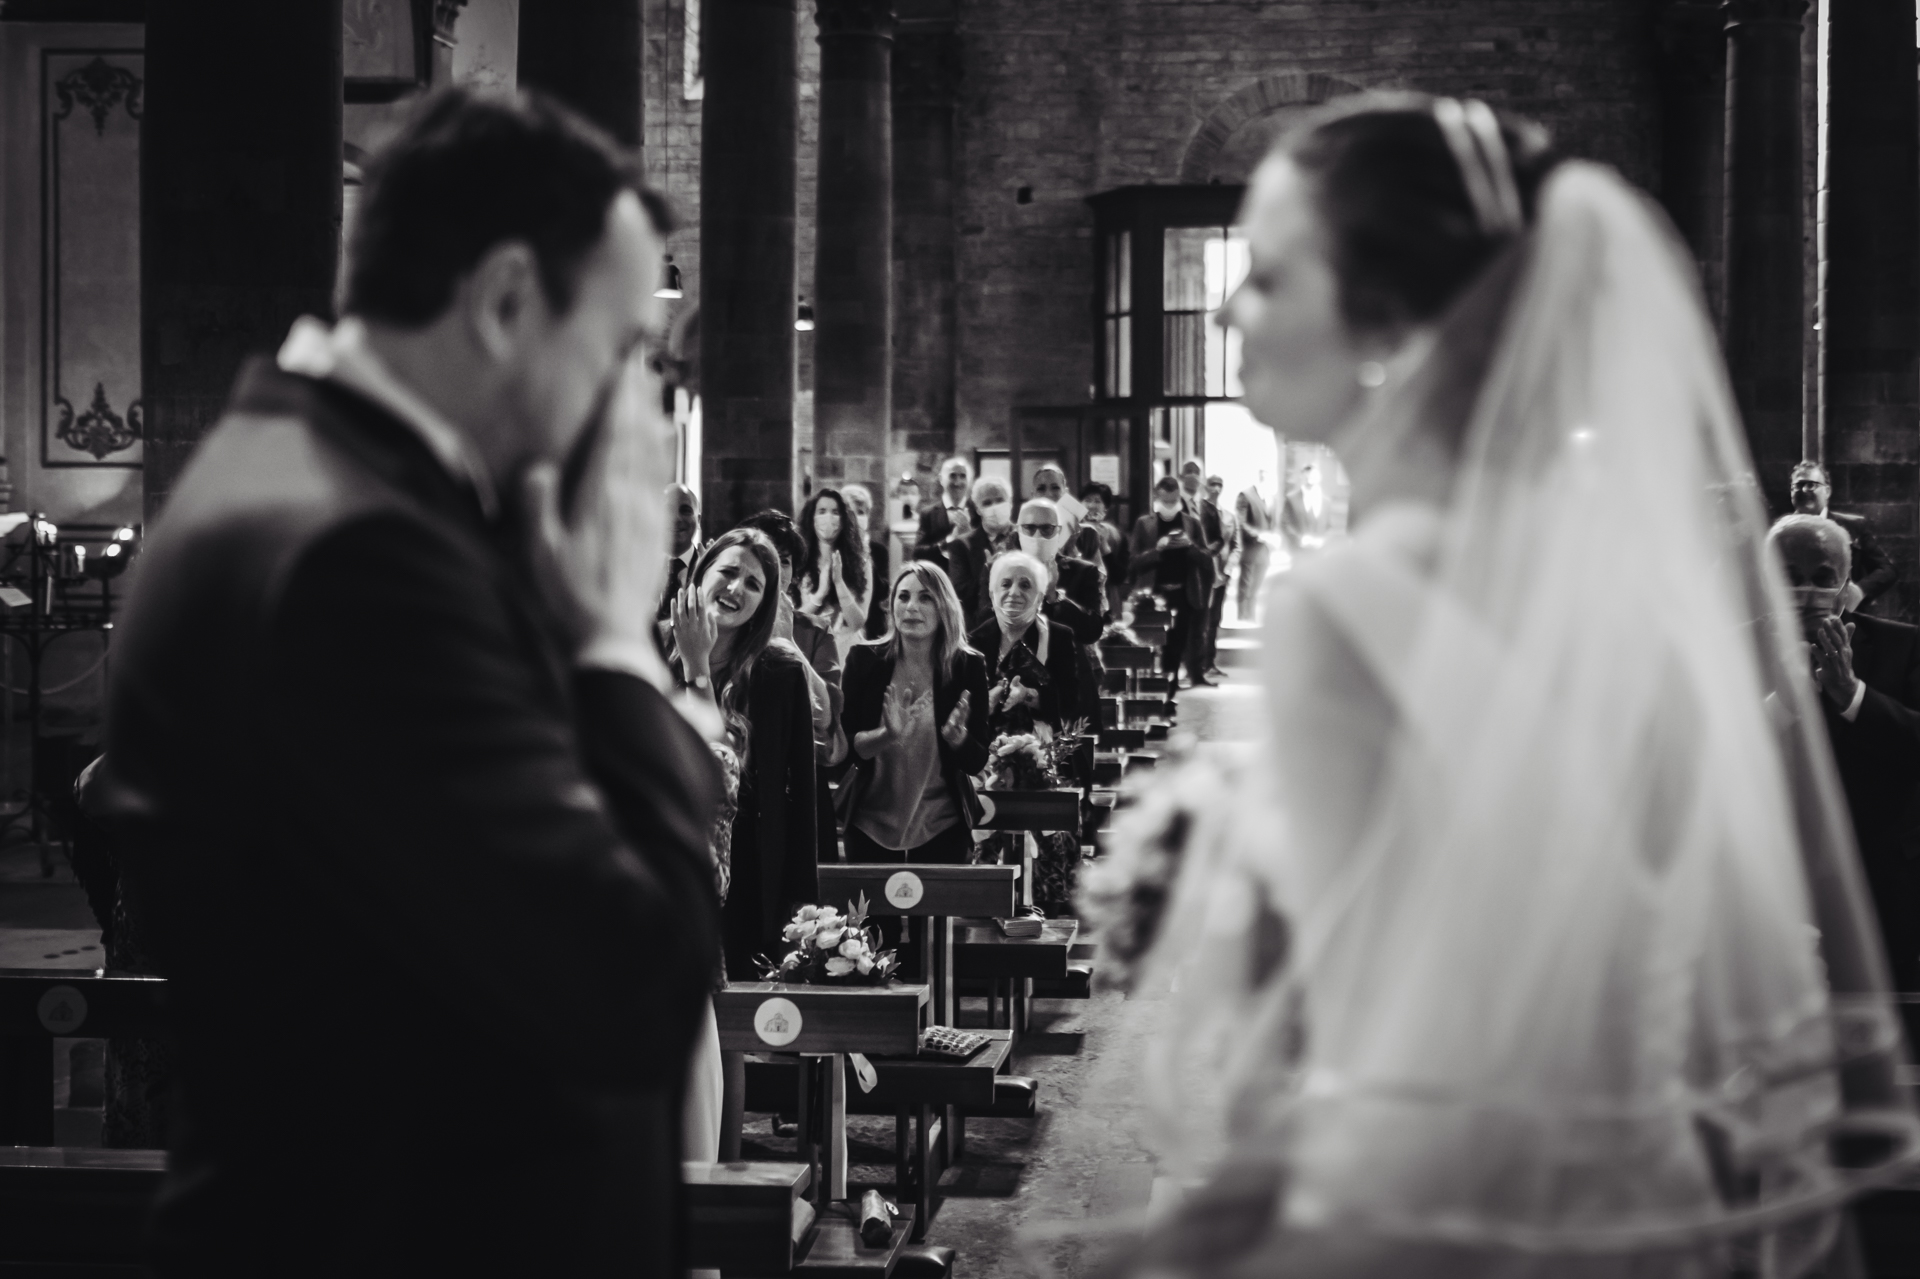 Florence Elopement Ceremony Picture | At the end of the ceremony, the groom can not contain his excitement and emotion